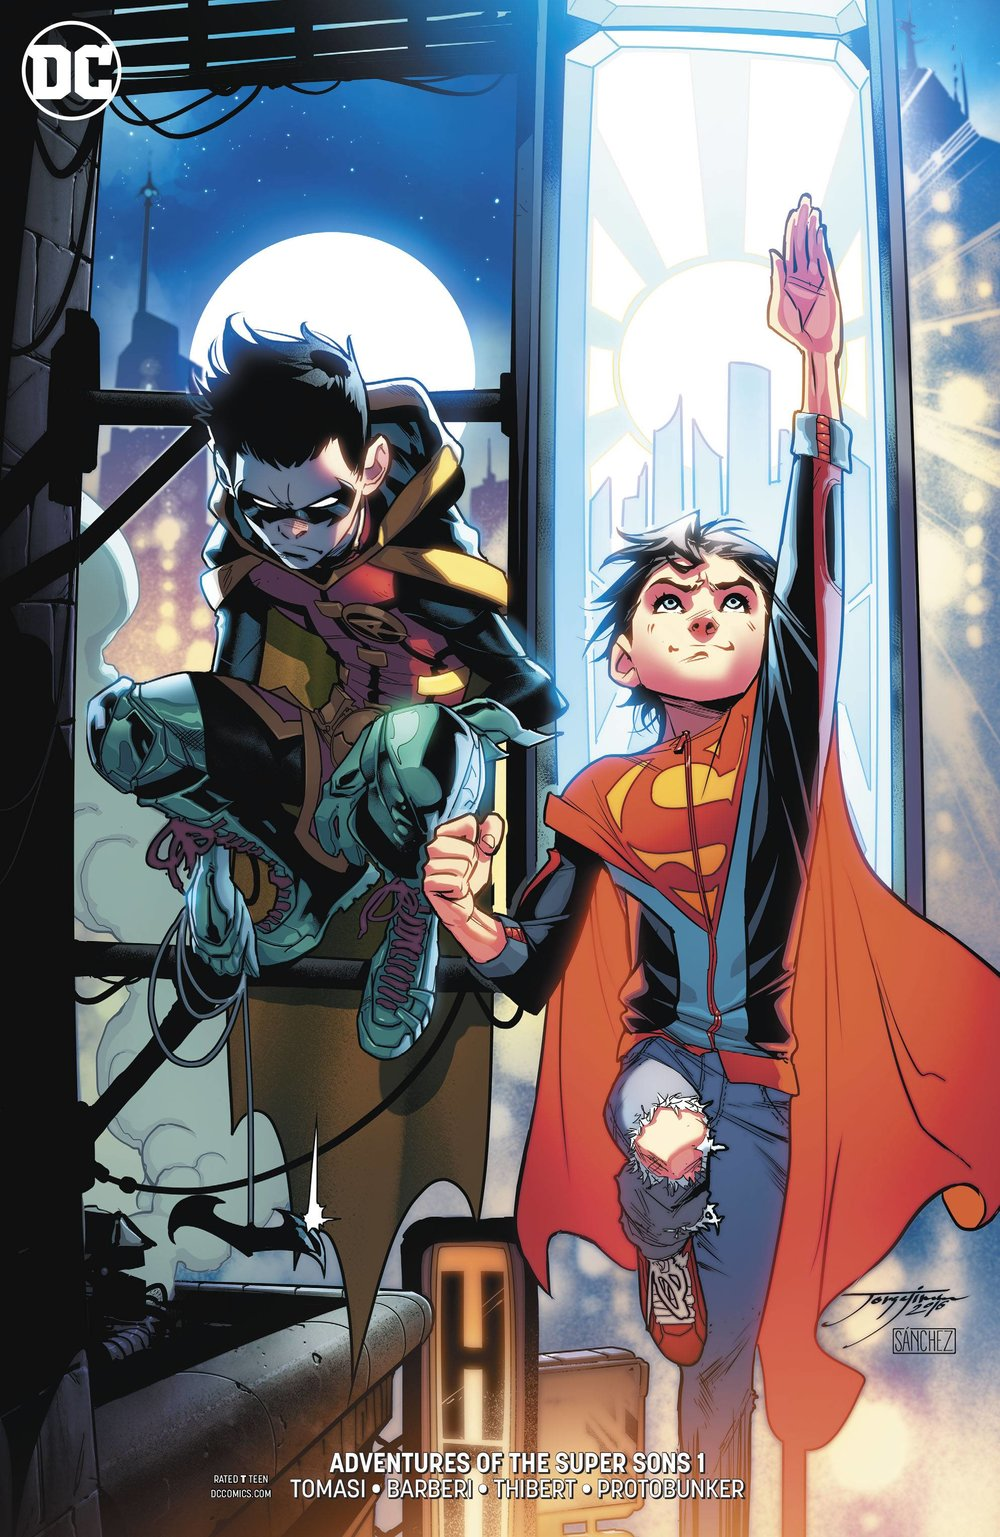 ADVENTURES OF THE SUPER SONS 1 of 12 VAR ED.jpg